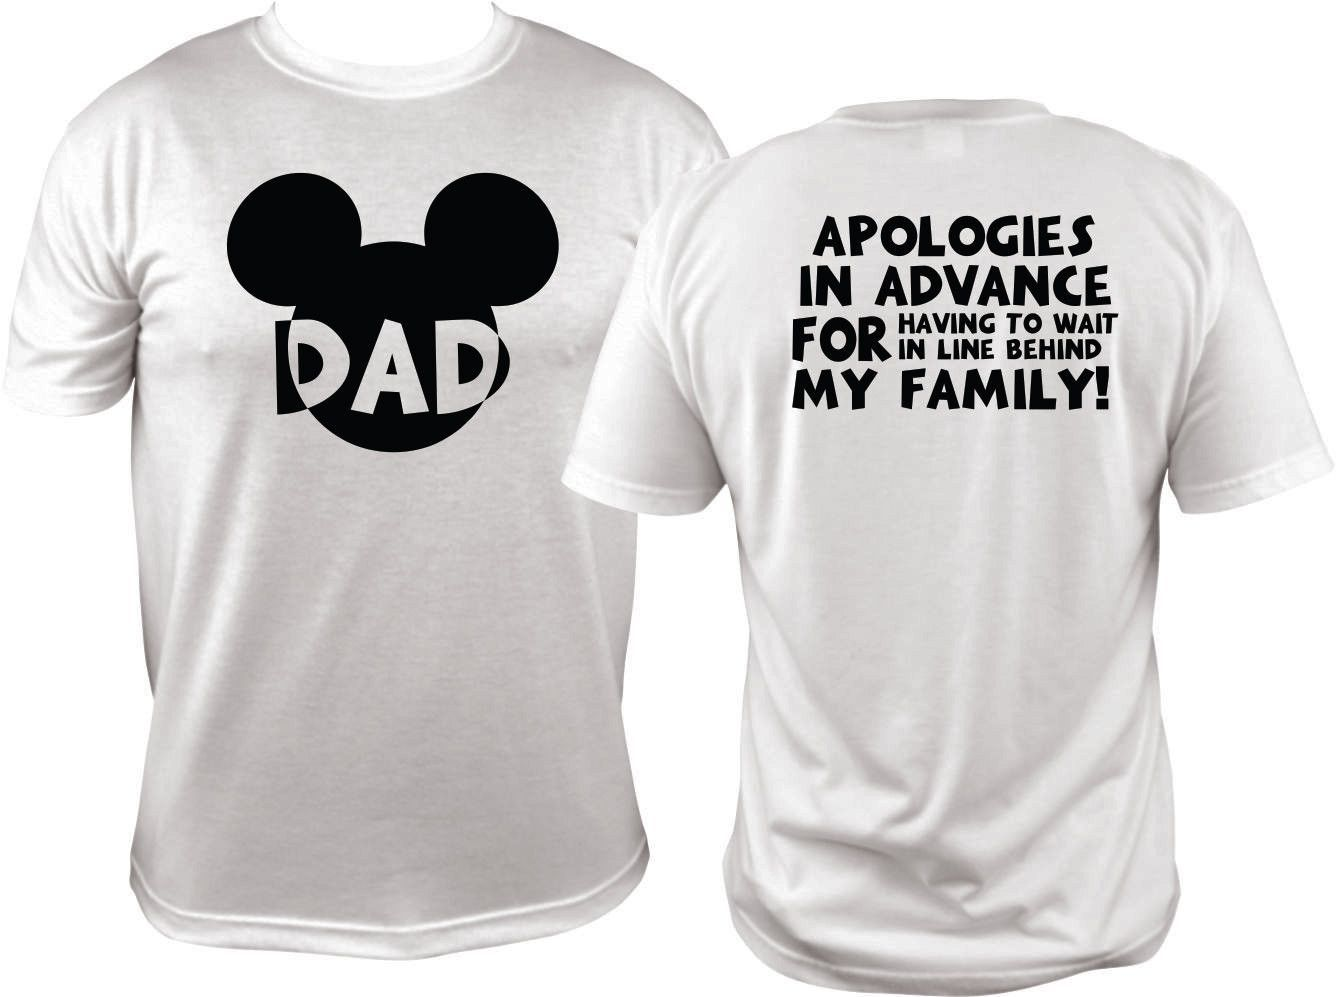 79d83201e2273 Funny Dads Disney T Shirt - Mickey Head Short Sleeve Tee in 2019 ...